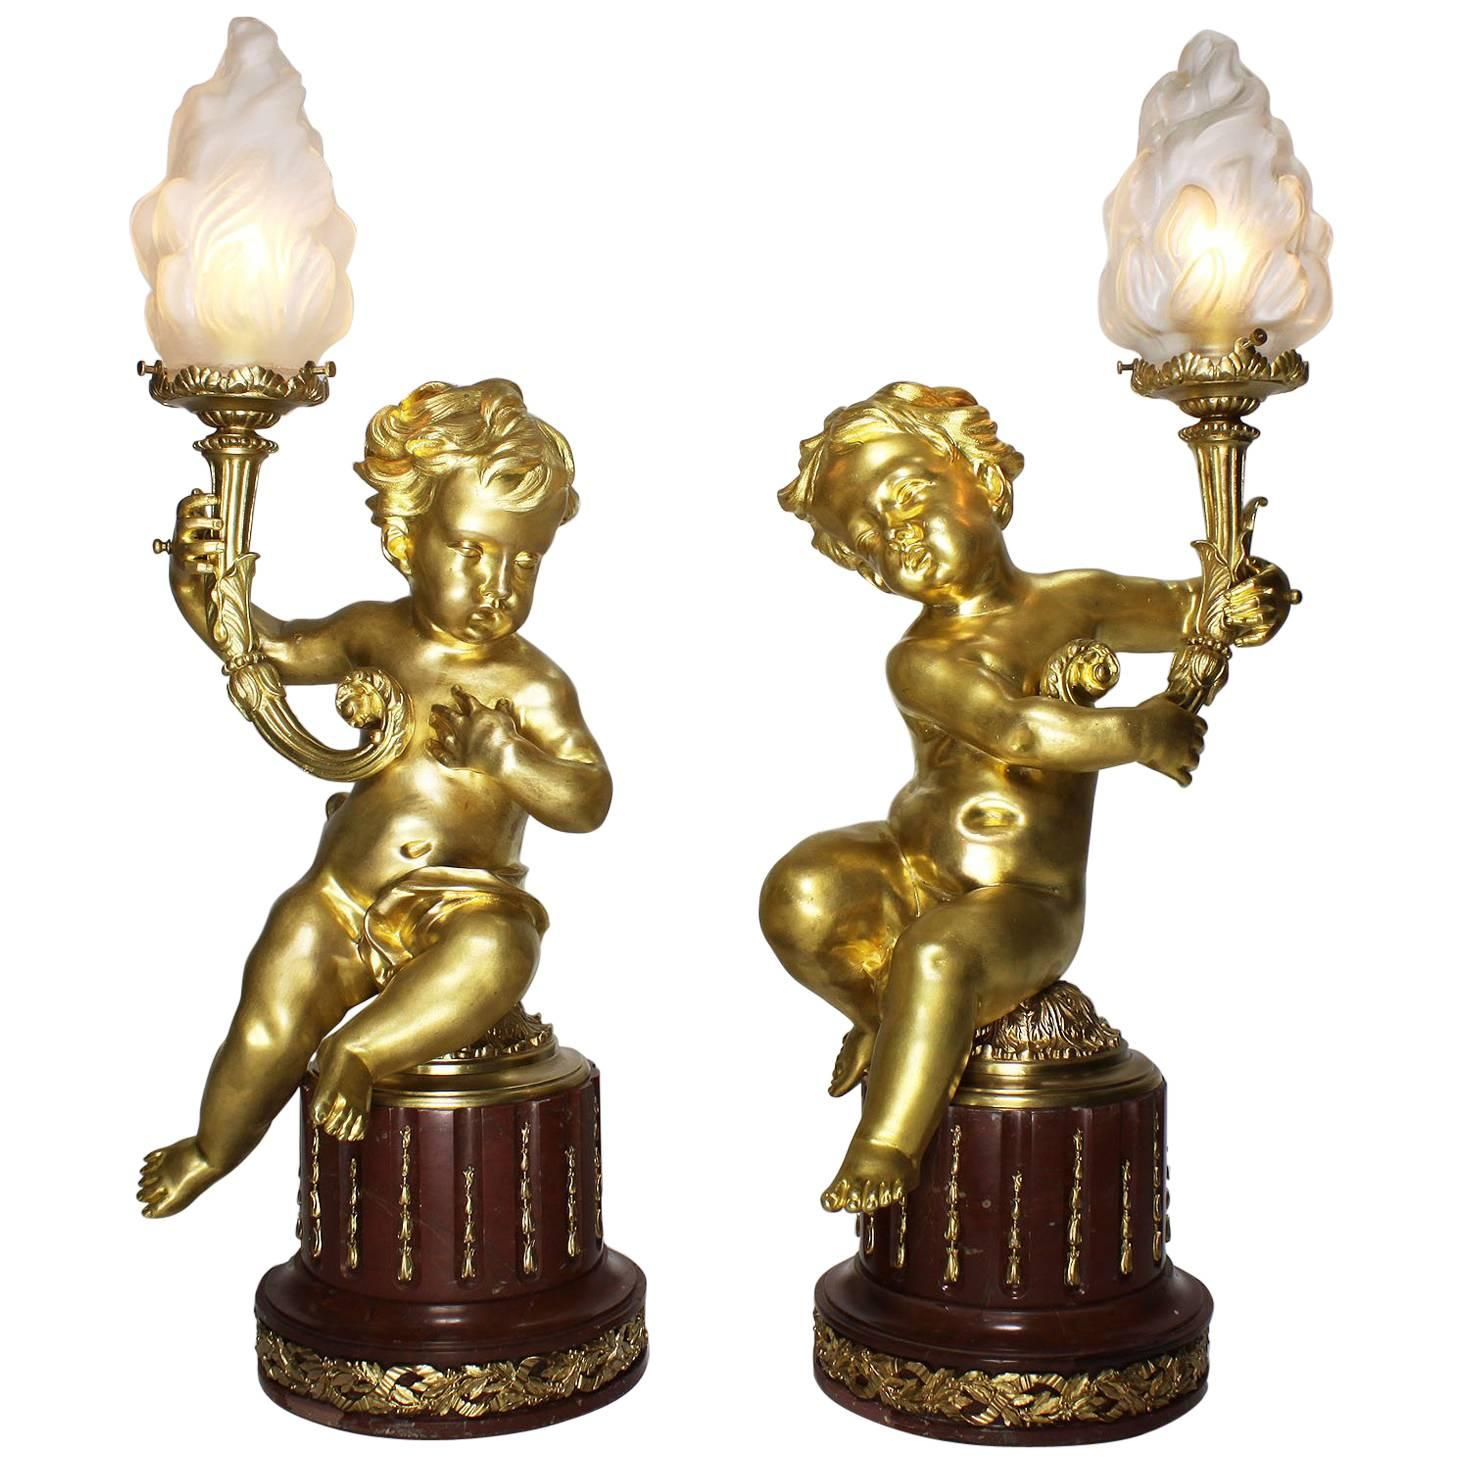 Pair of French 19th-20th Century Louis XV Style Gilt-Bronze Putti Table Lamps